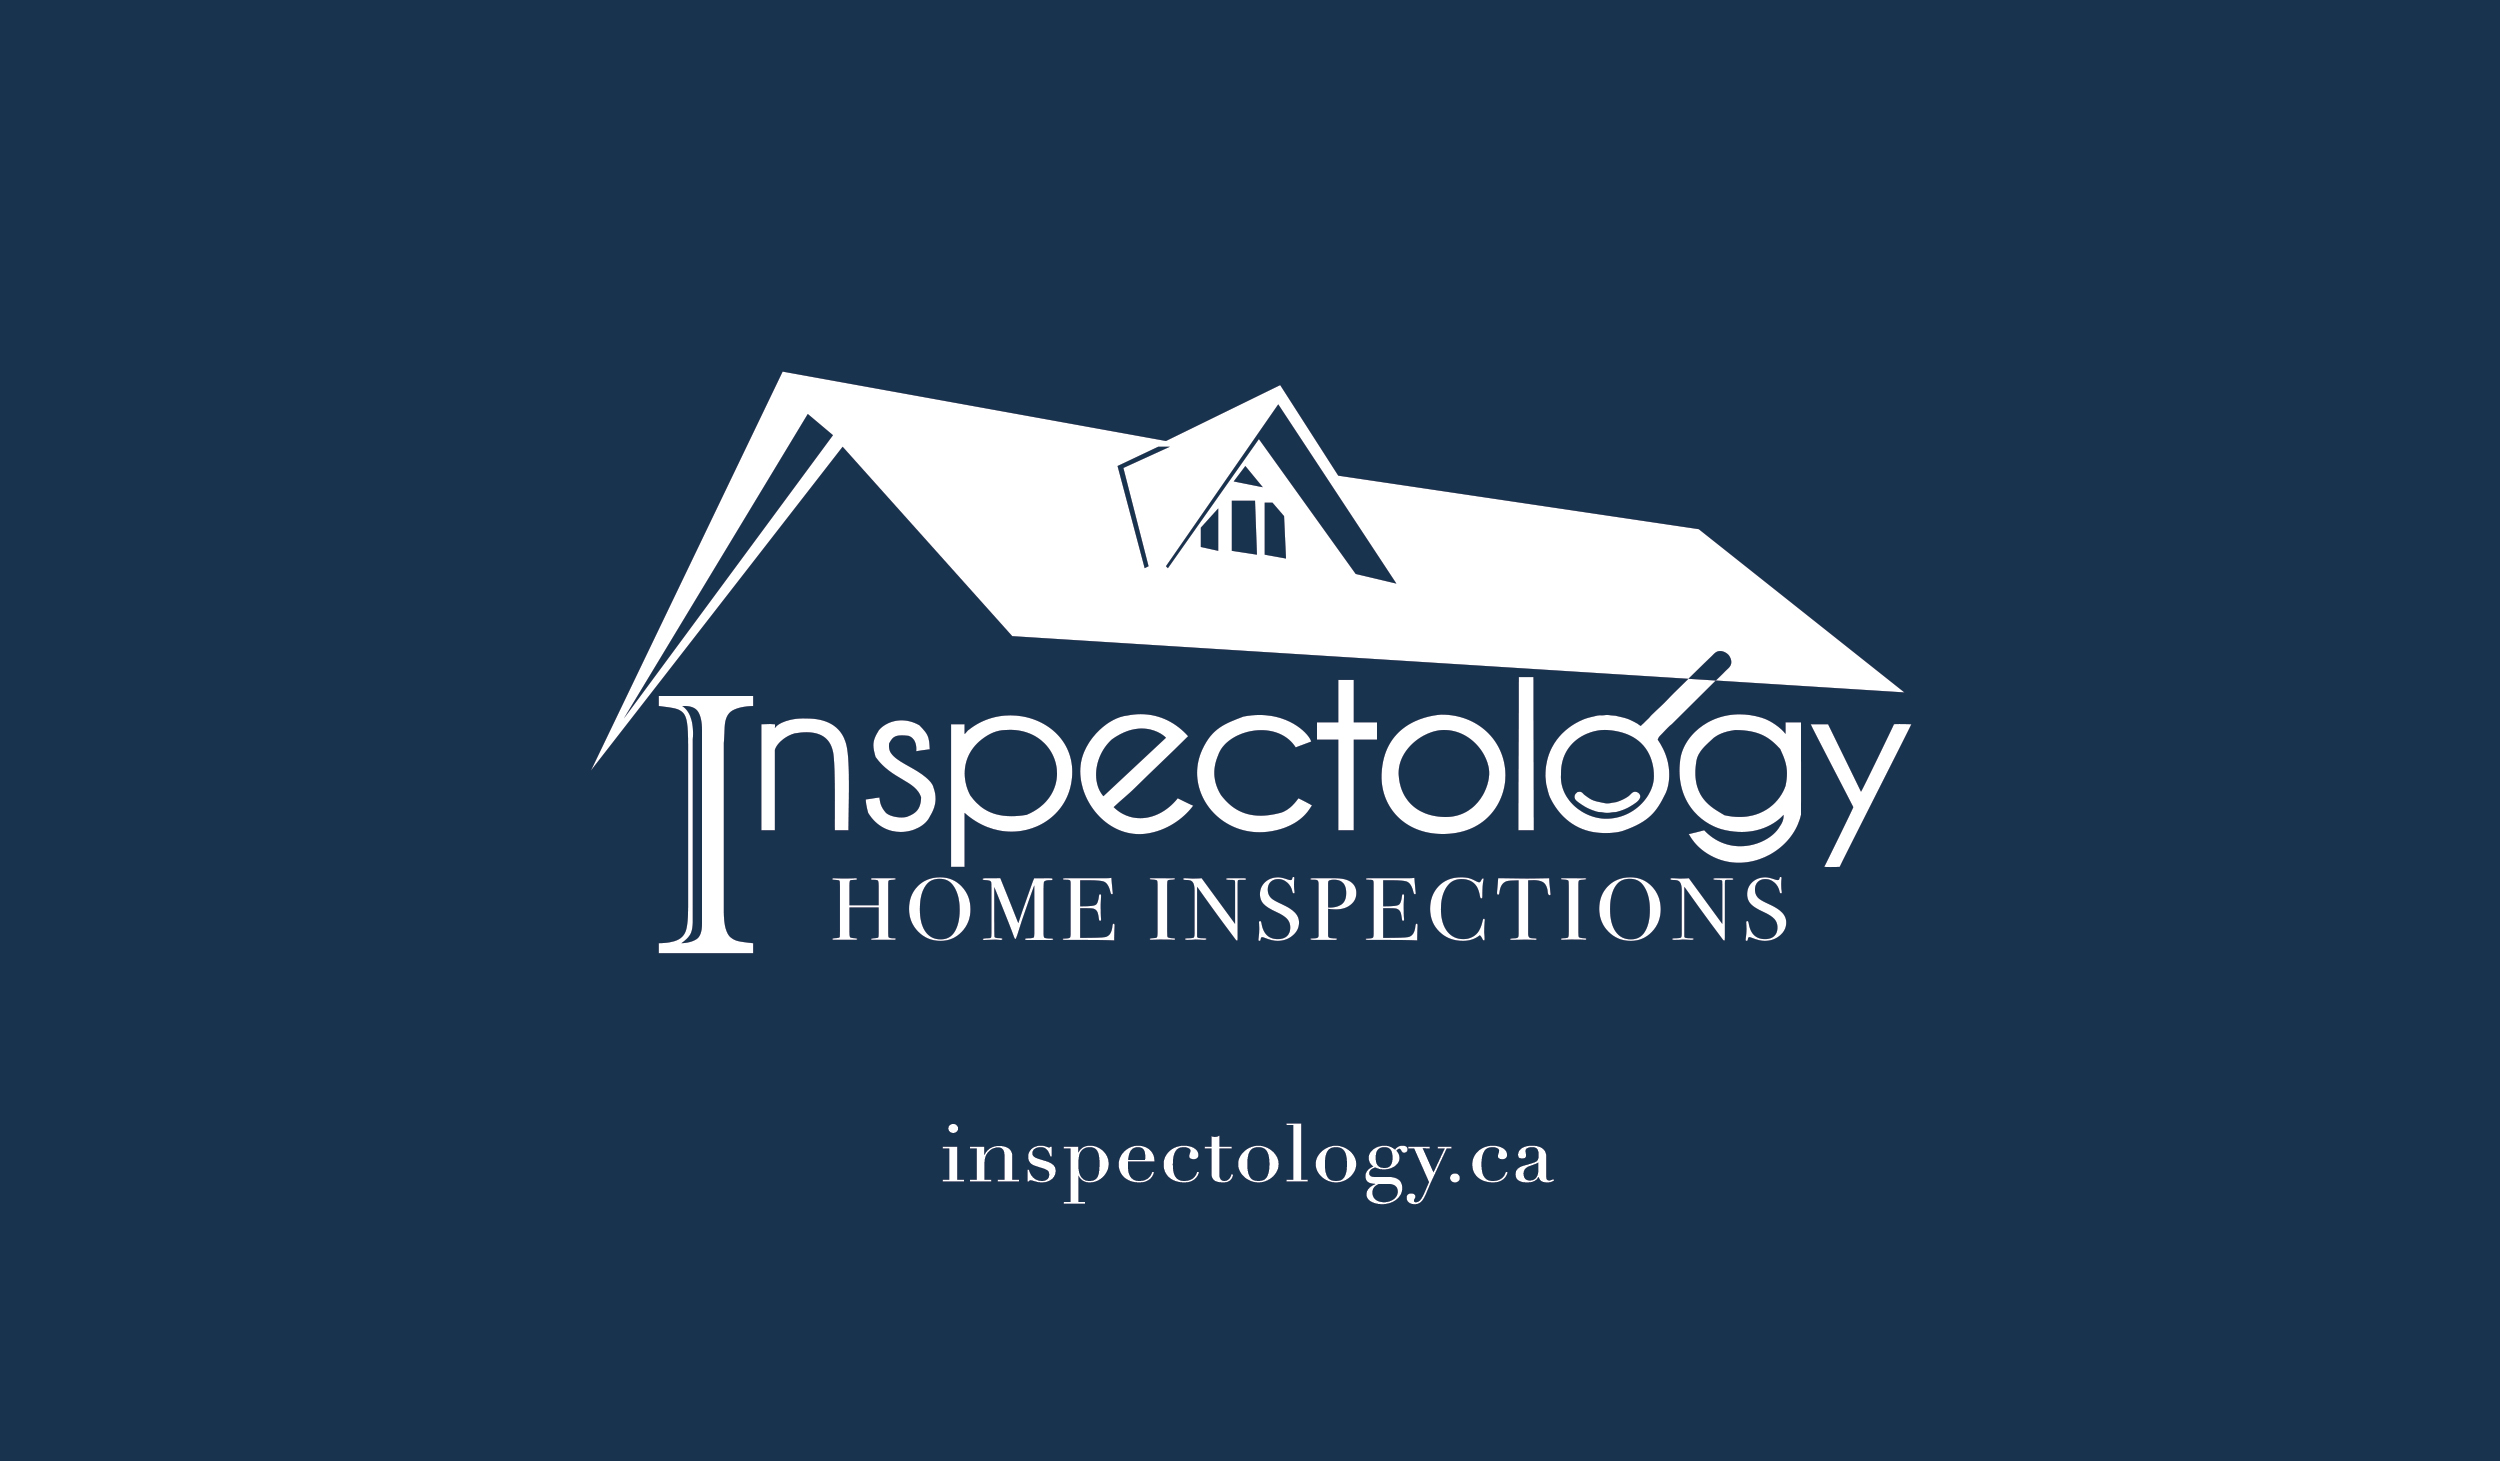 INSPECTOLOGY Home Inspections